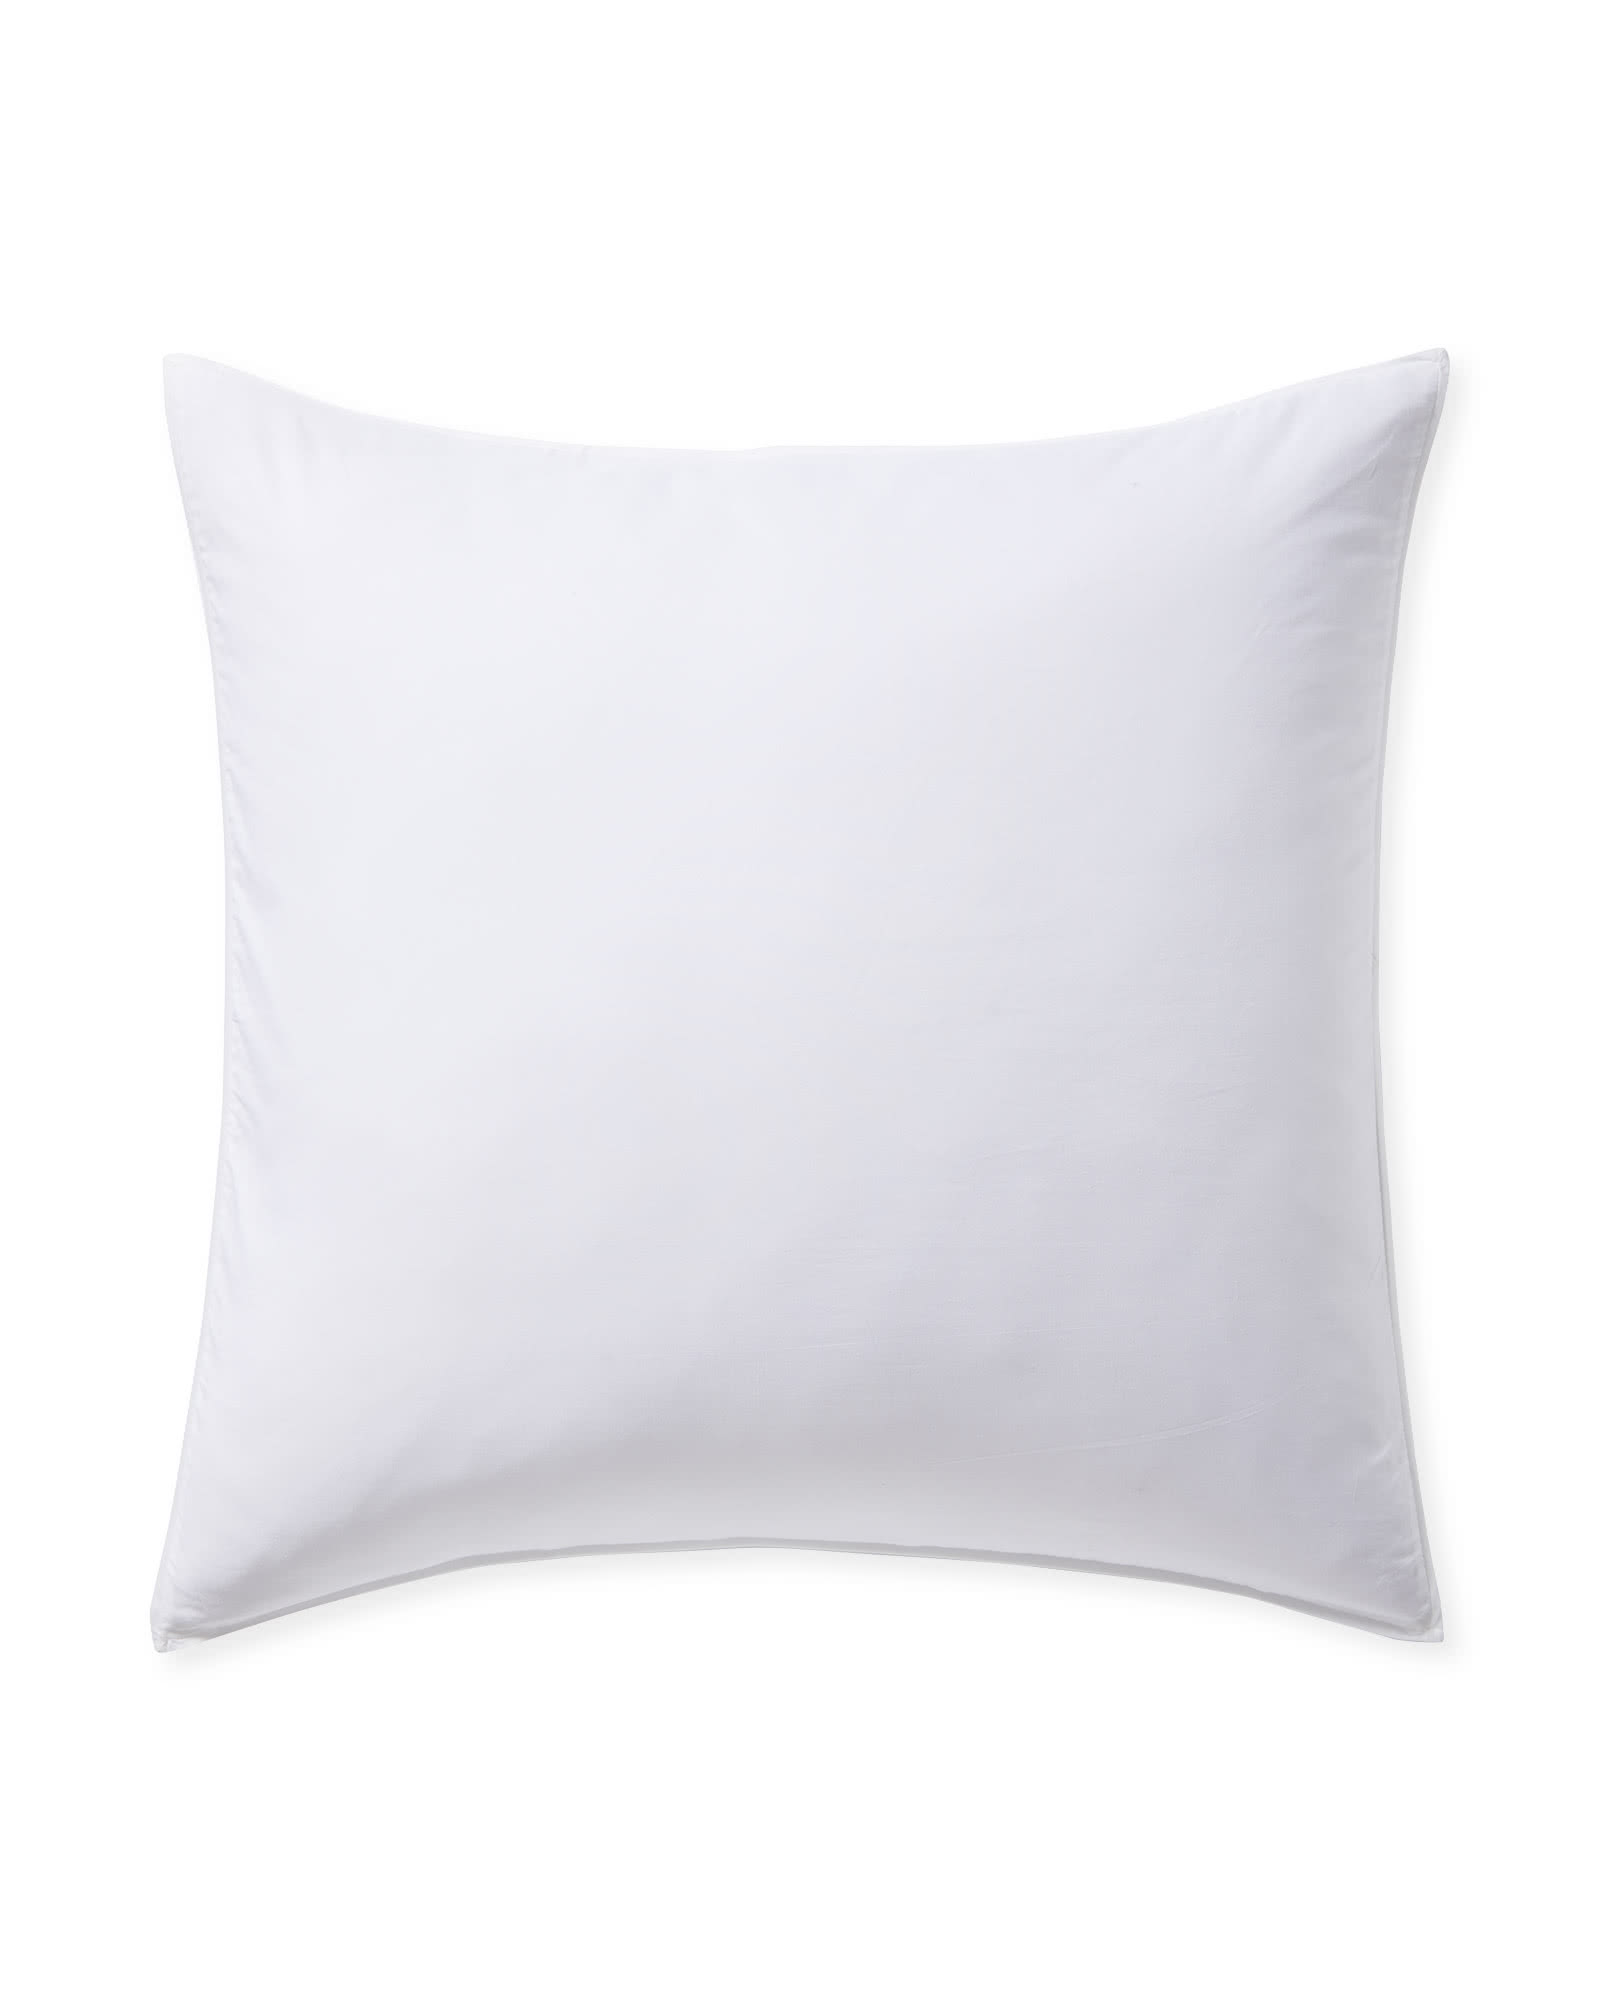 Beach Club Shams, White